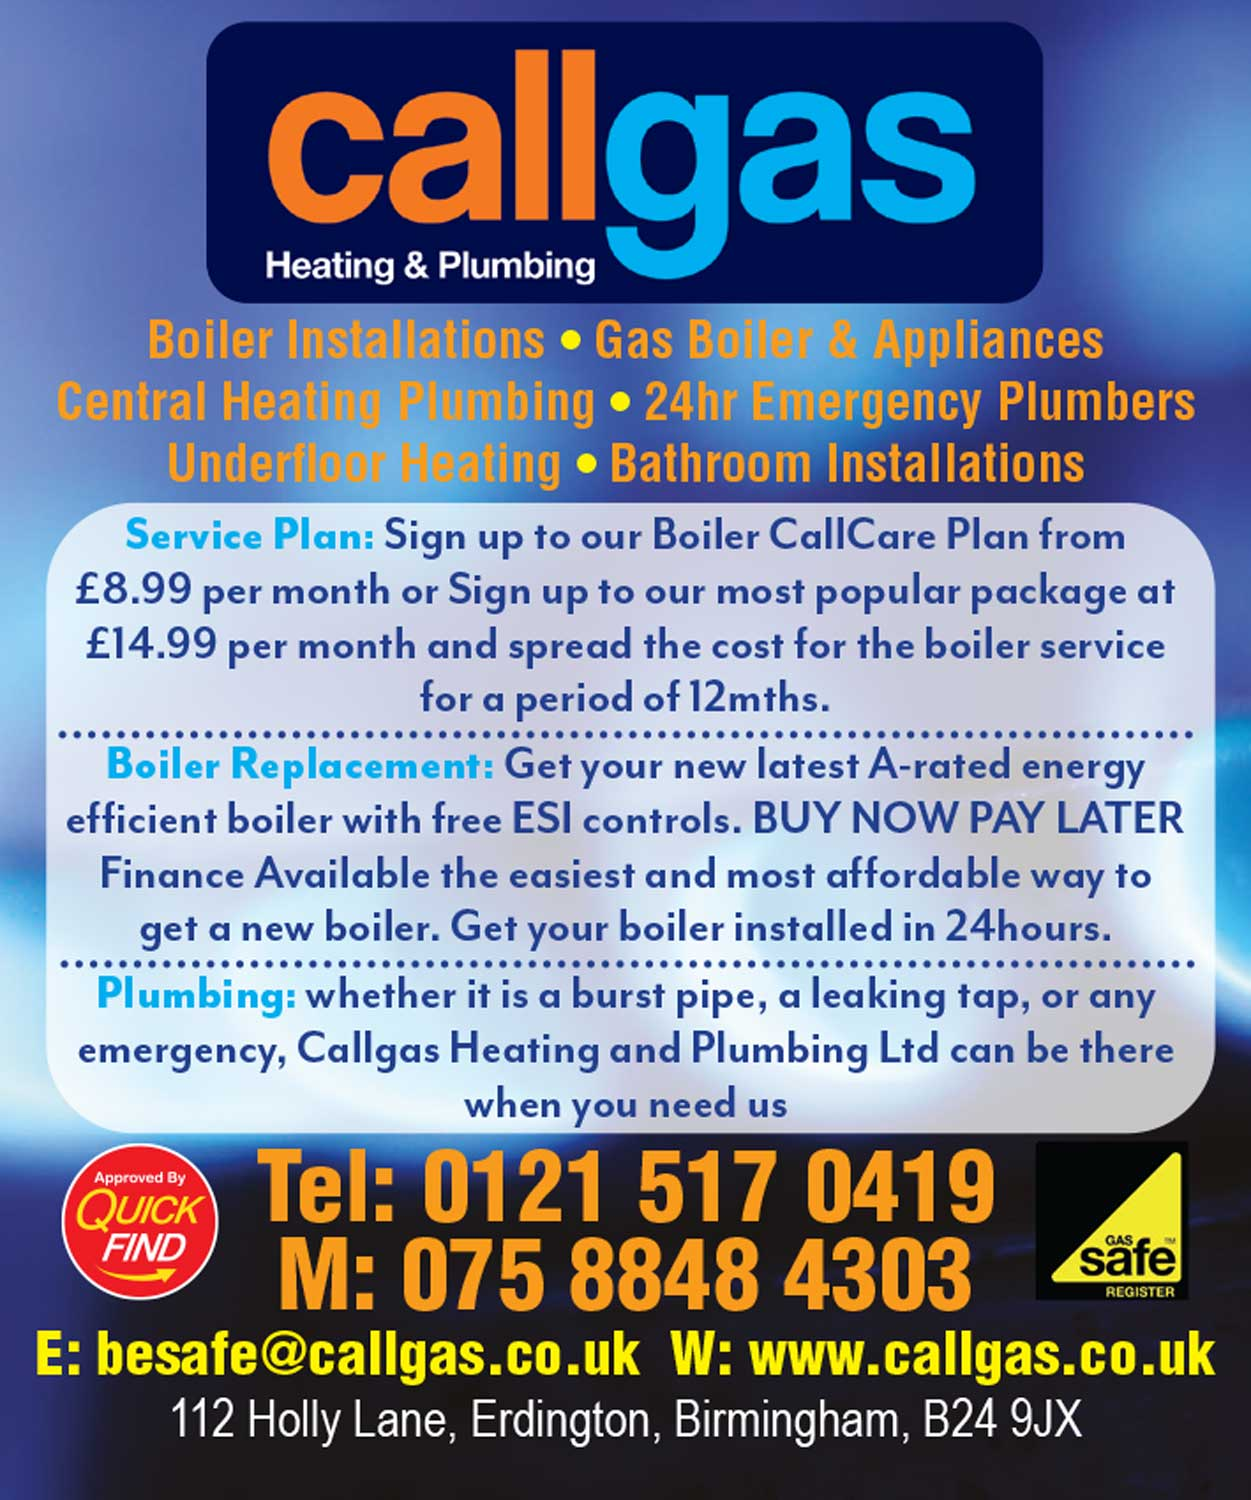 Callgas Heating and Plumbing Ltd